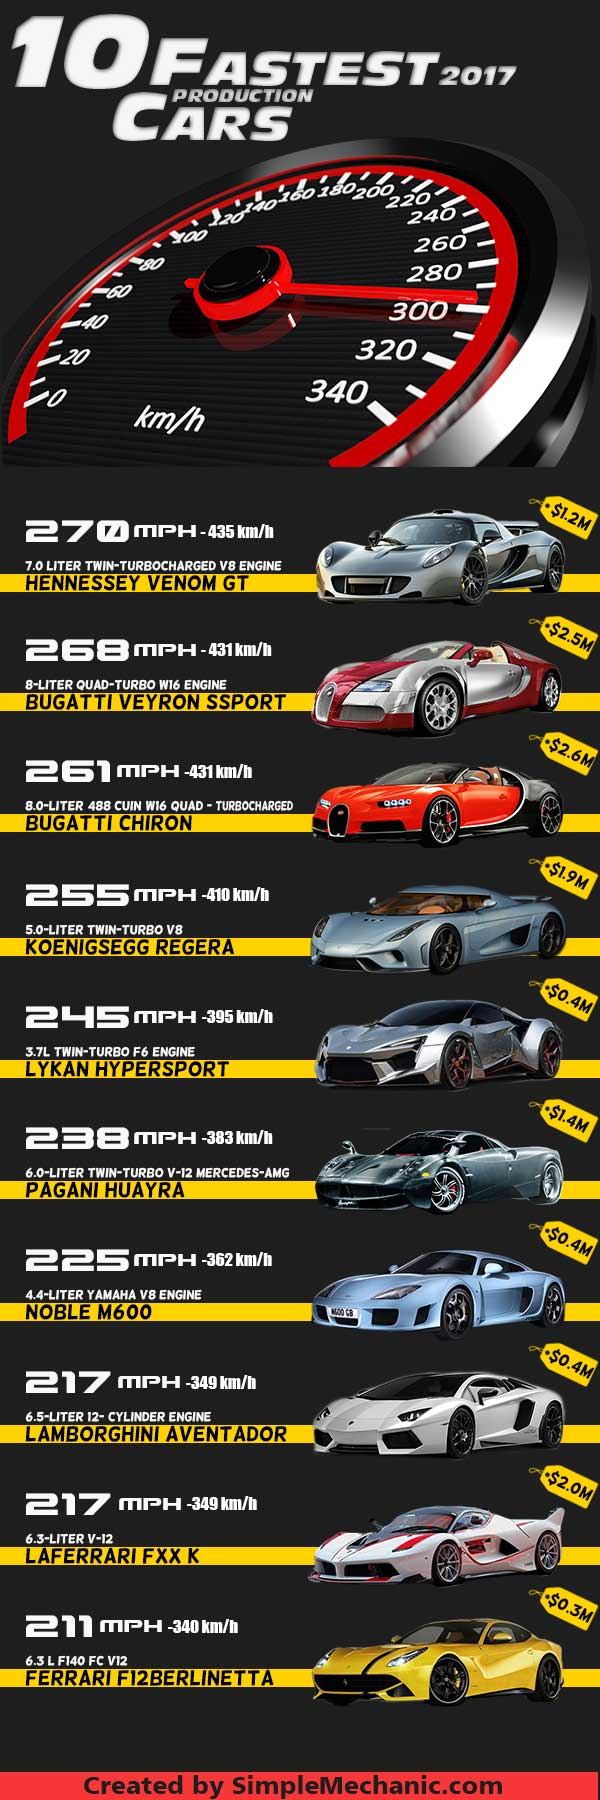 10 fastest production cars in the world 2017 infographic. Black Bedroom Furniture Sets. Home Design Ideas